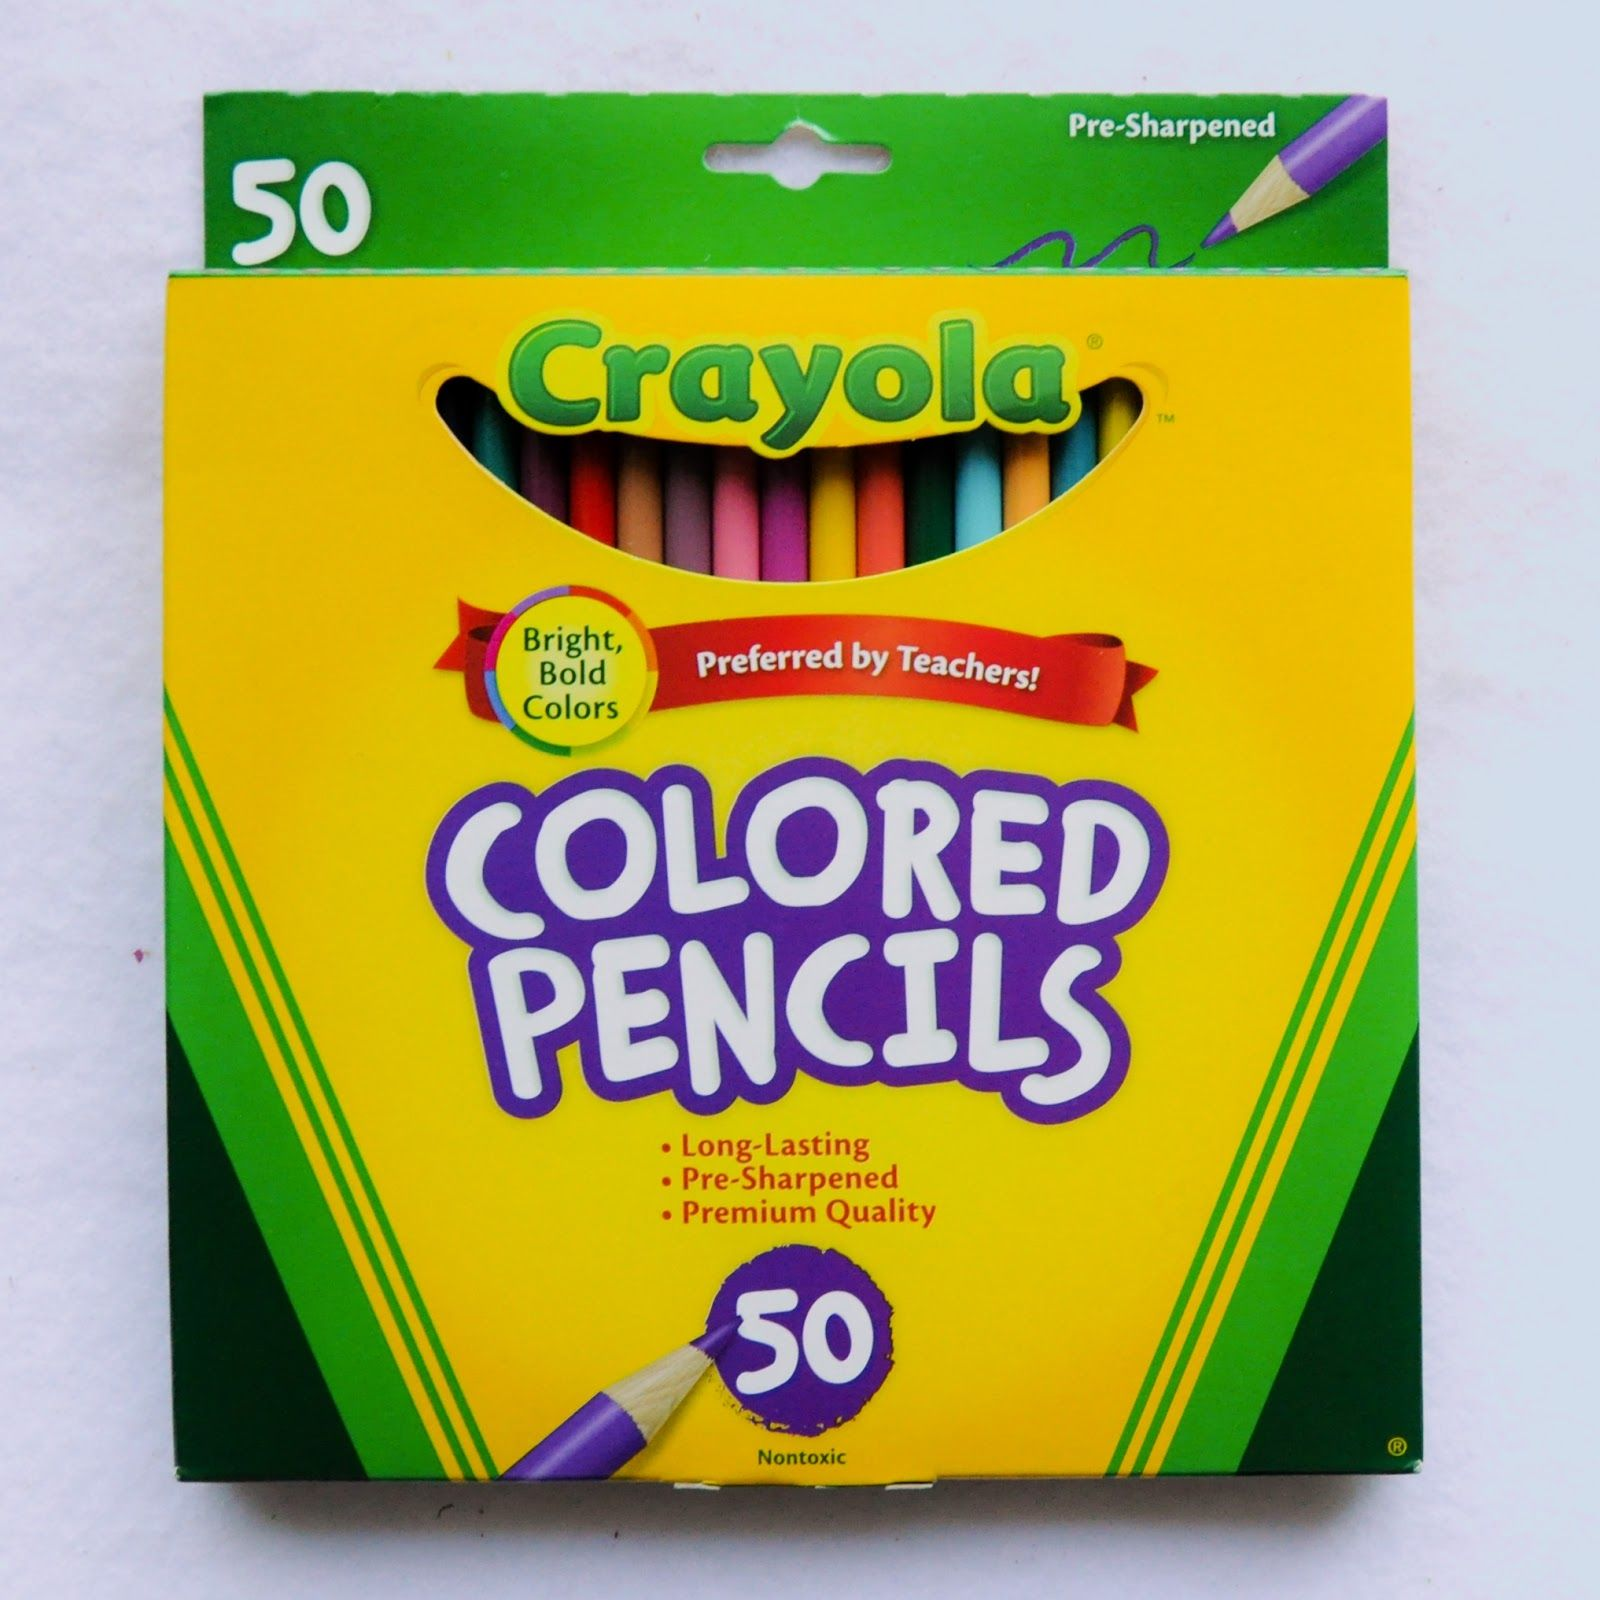 Nothing like a box of 50 Crayola colored pencils!